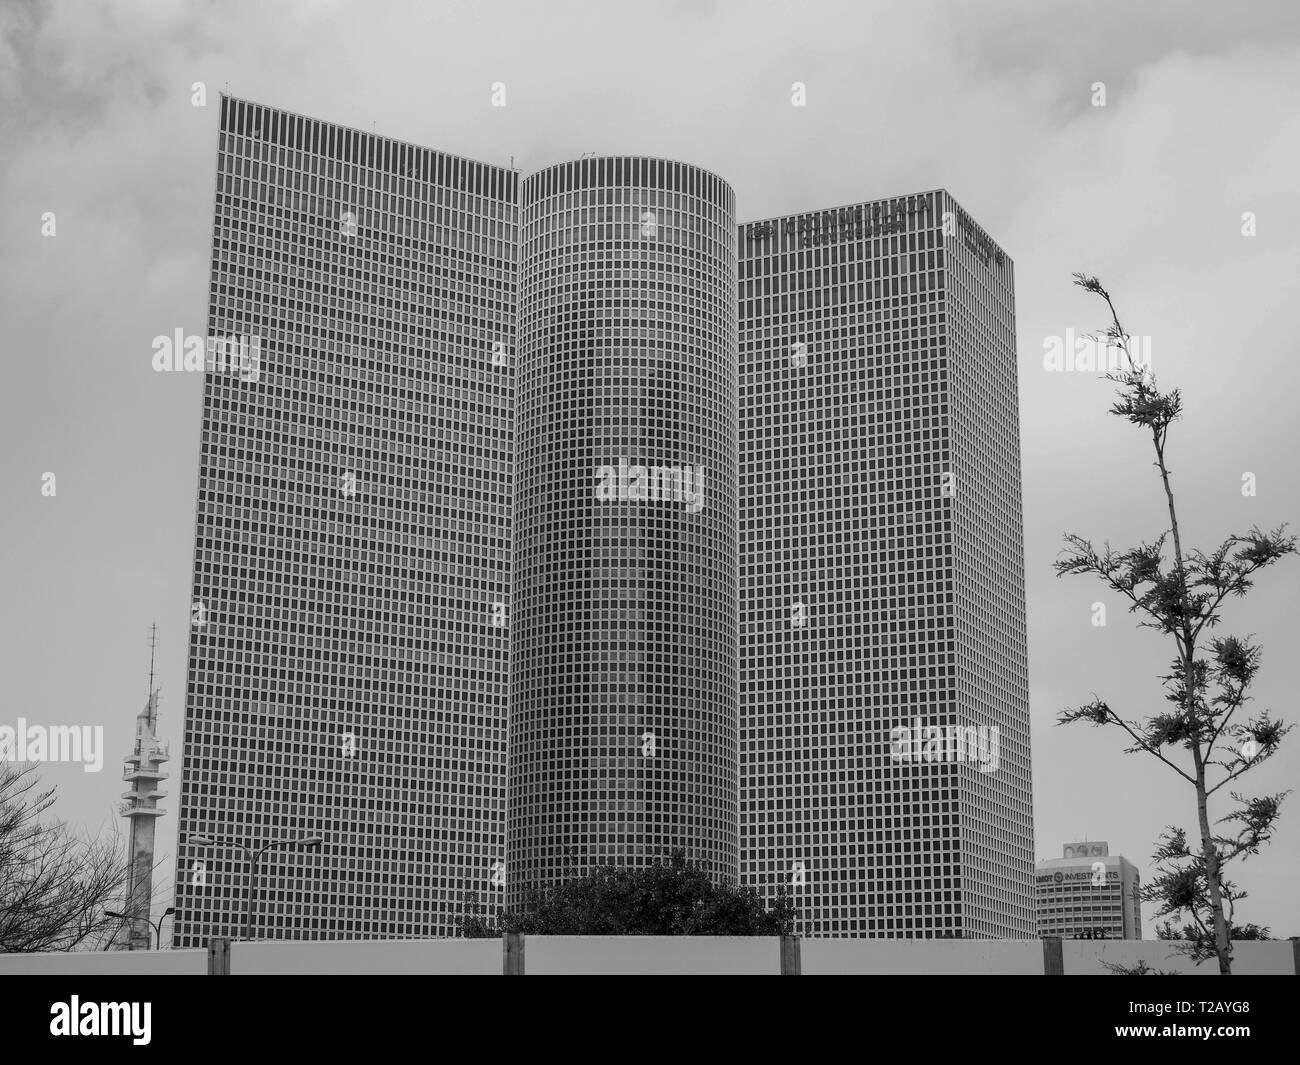 Azrieli towers. Modern, glass faced High rise buildings in Tel Aviv, Israel - Stock Image